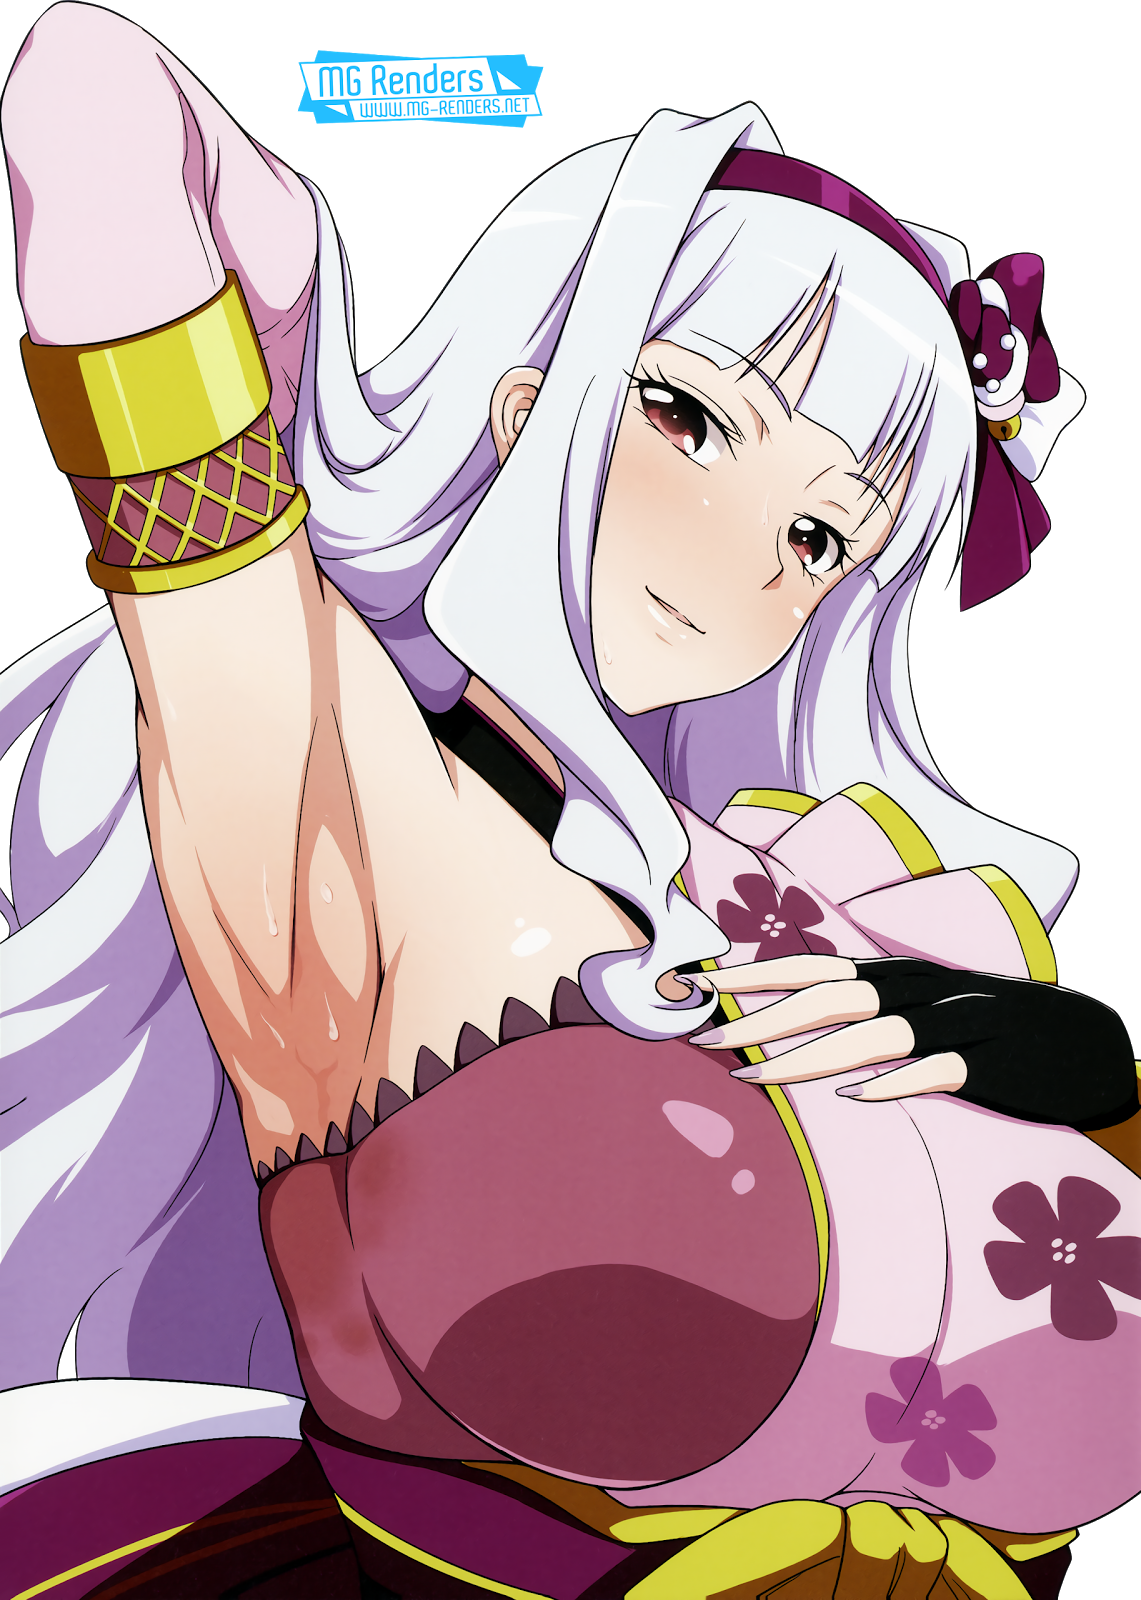 Tags: Anime, Render,  Armpit,  Huge Breasts,  Jabara Tornado,  Shijou Takane,  THE iDOLM@STER,  PNG, Image, Picture